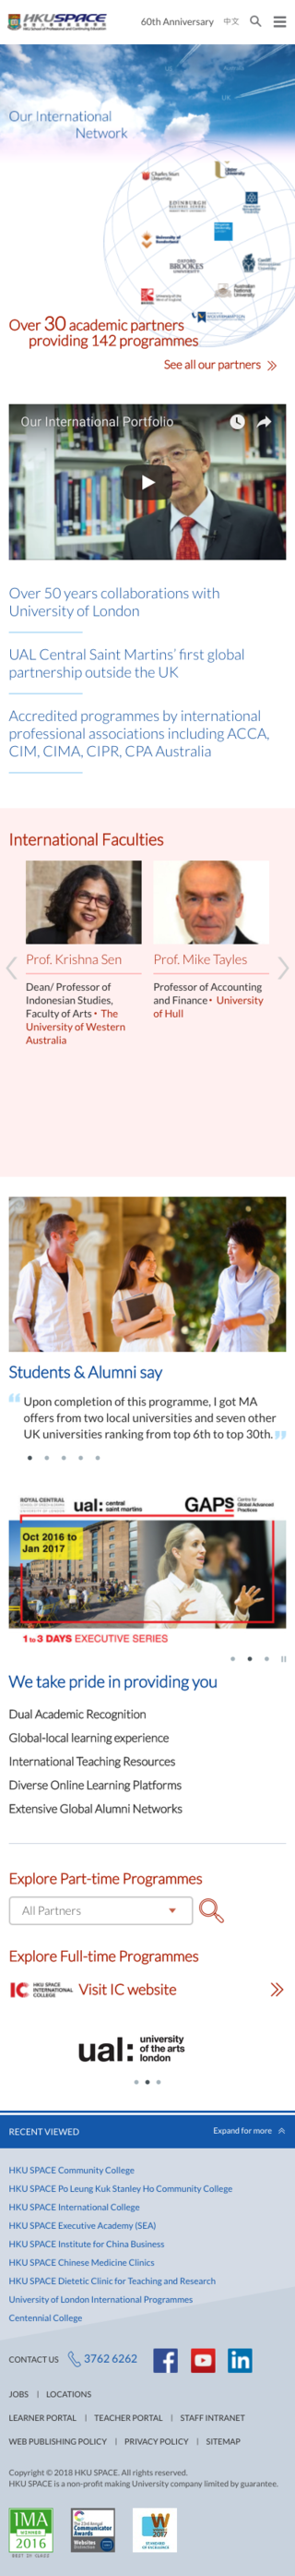 HKU SPACE website screenshot for mobile version 5 of 6